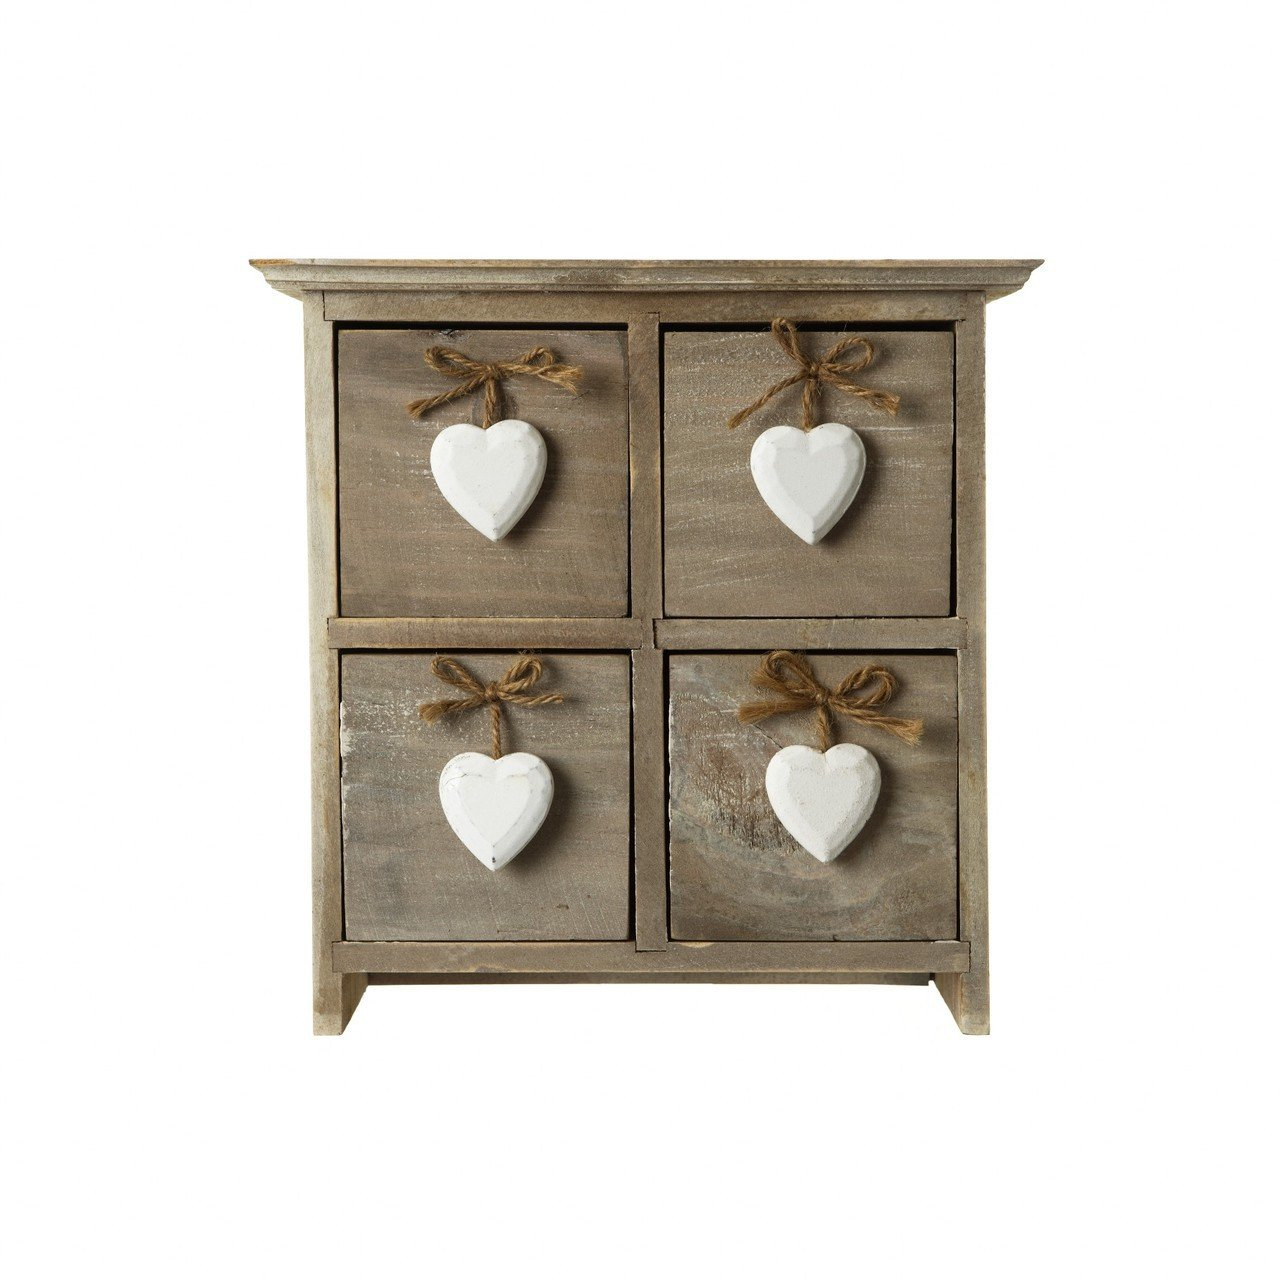 Chic /& Shabby Wooden 4 Drawer Cabinet Storage Chest White Hanging Hearts Handles BYZ060